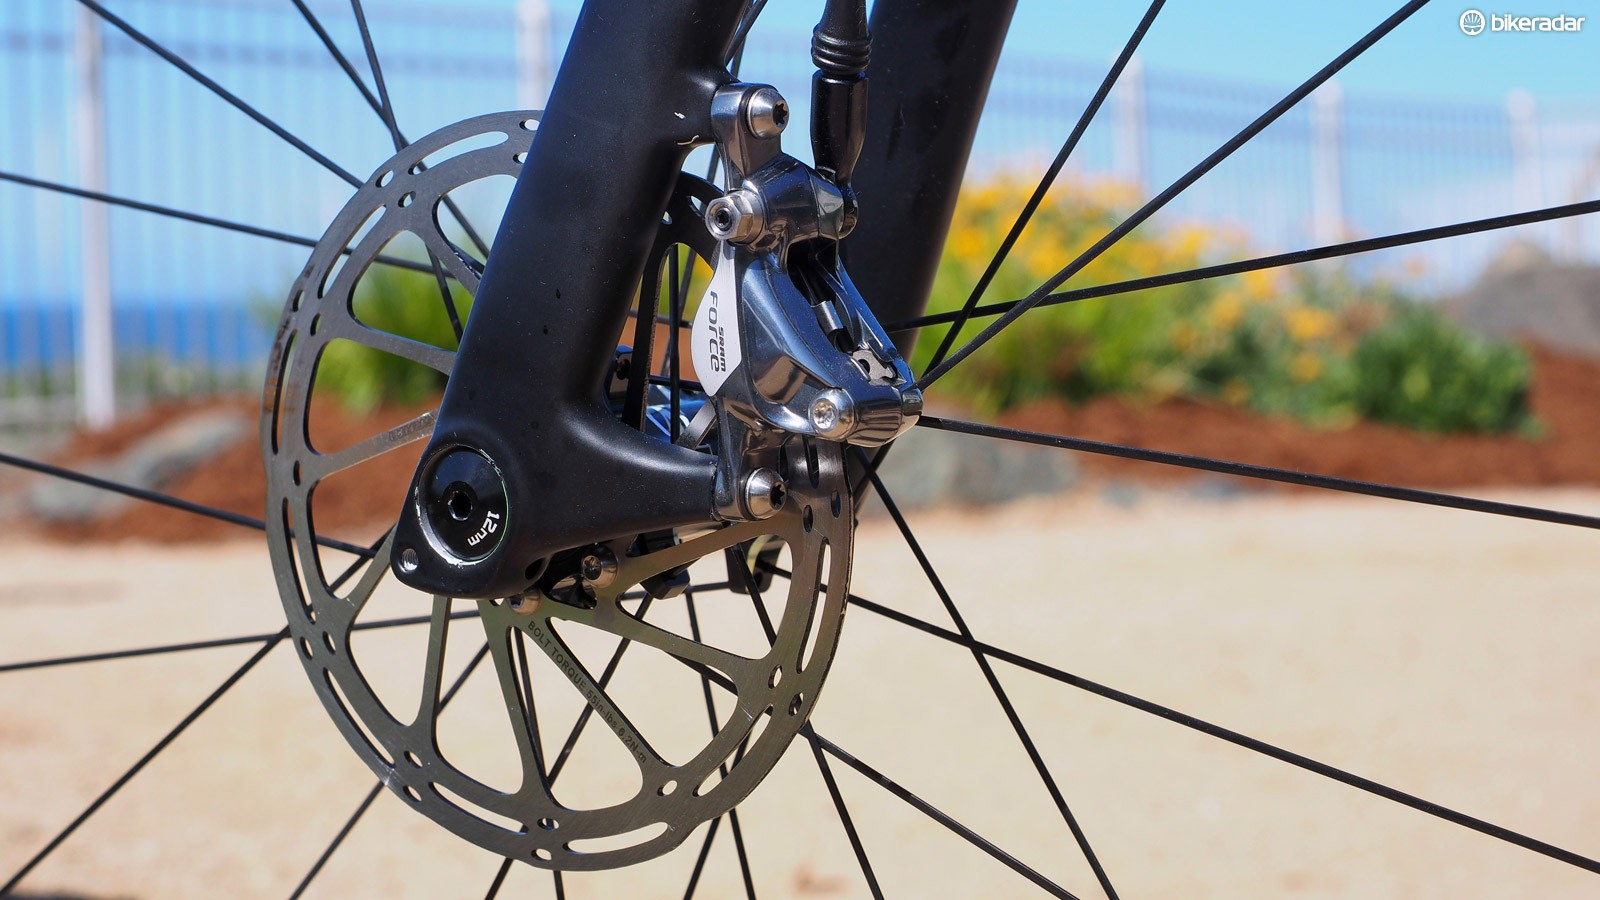 Disc brakes are coming to road bikes in a big way - but why? And why should you care?